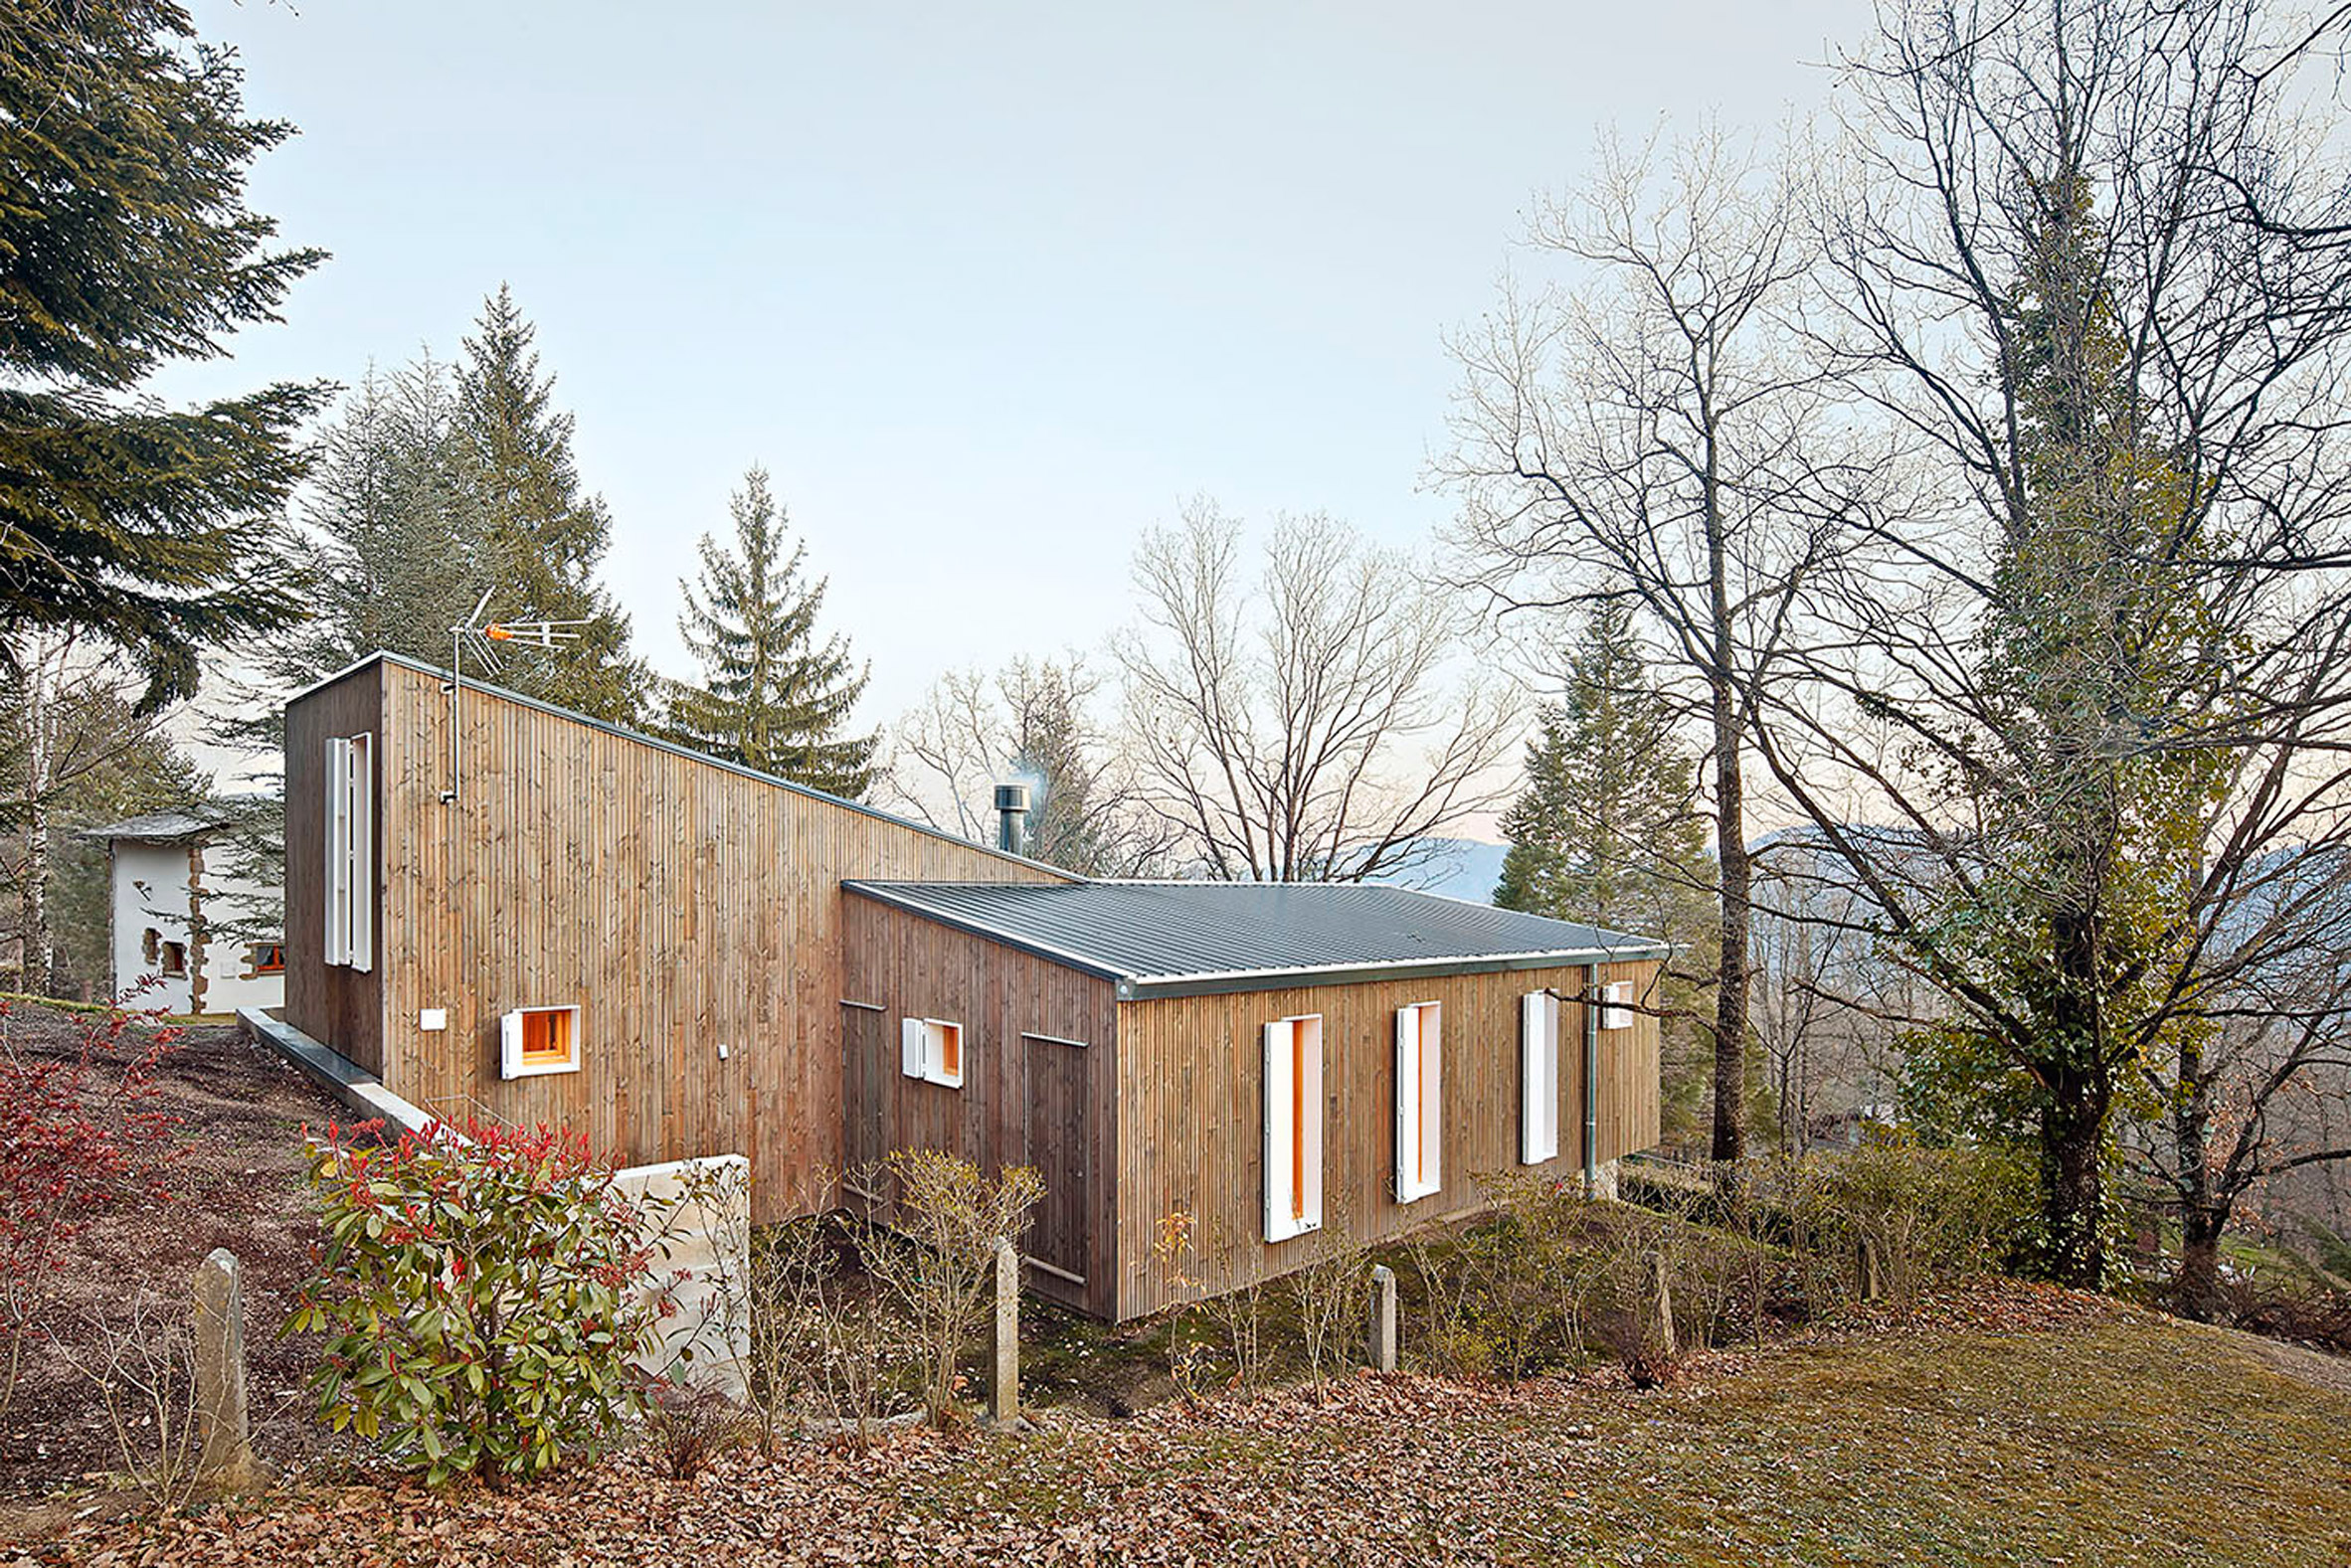 5. Prefababricated wooden home in the Pyrenees by architect Marc Mogas - Prefabricated wooden home in the Pyrenees by architect Marc Mogas